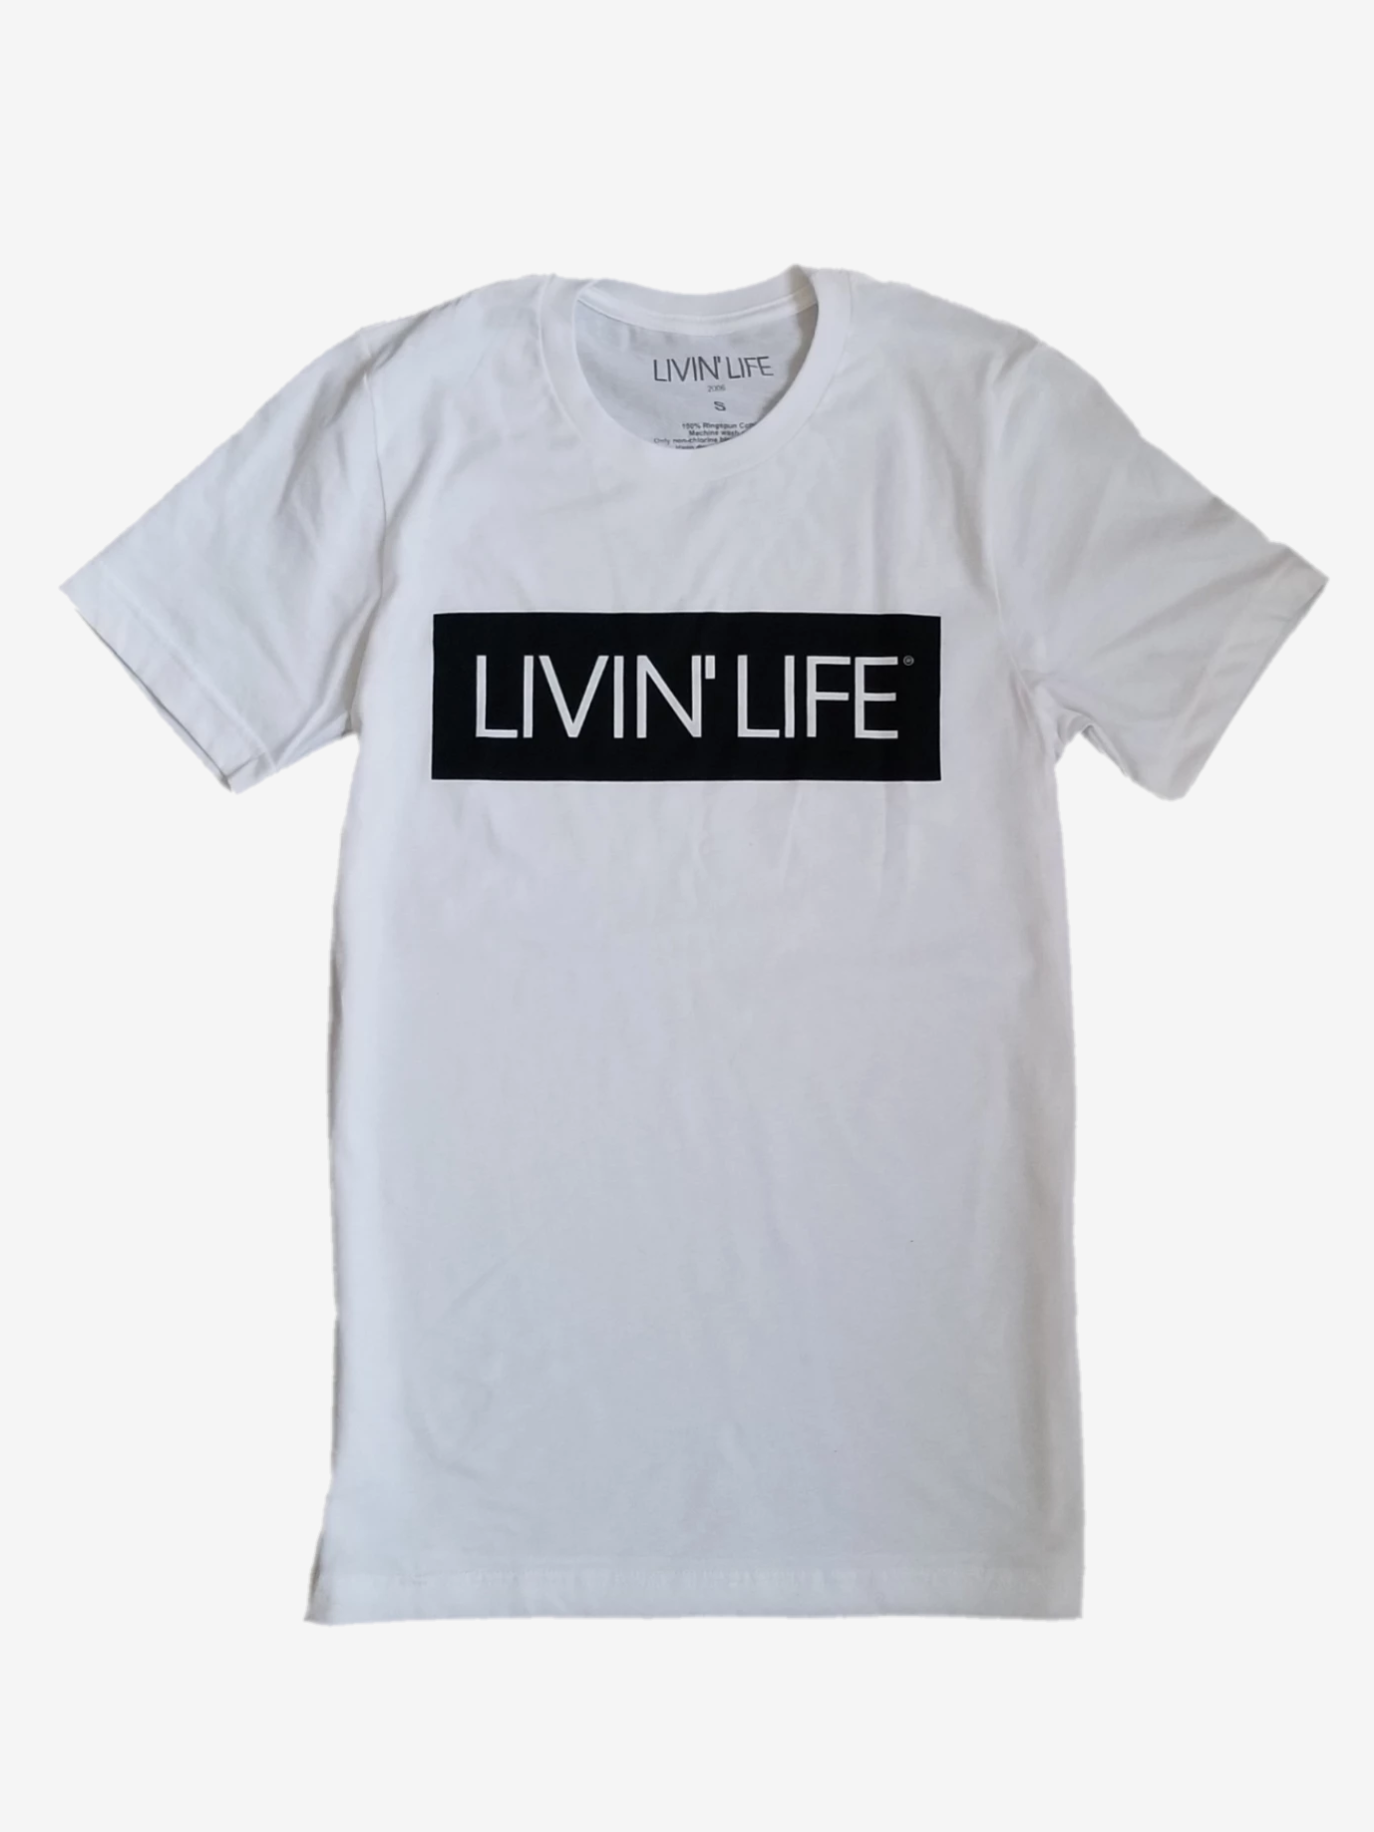 LIVIN' LIFE® Signature T-Shirt (White/Black)